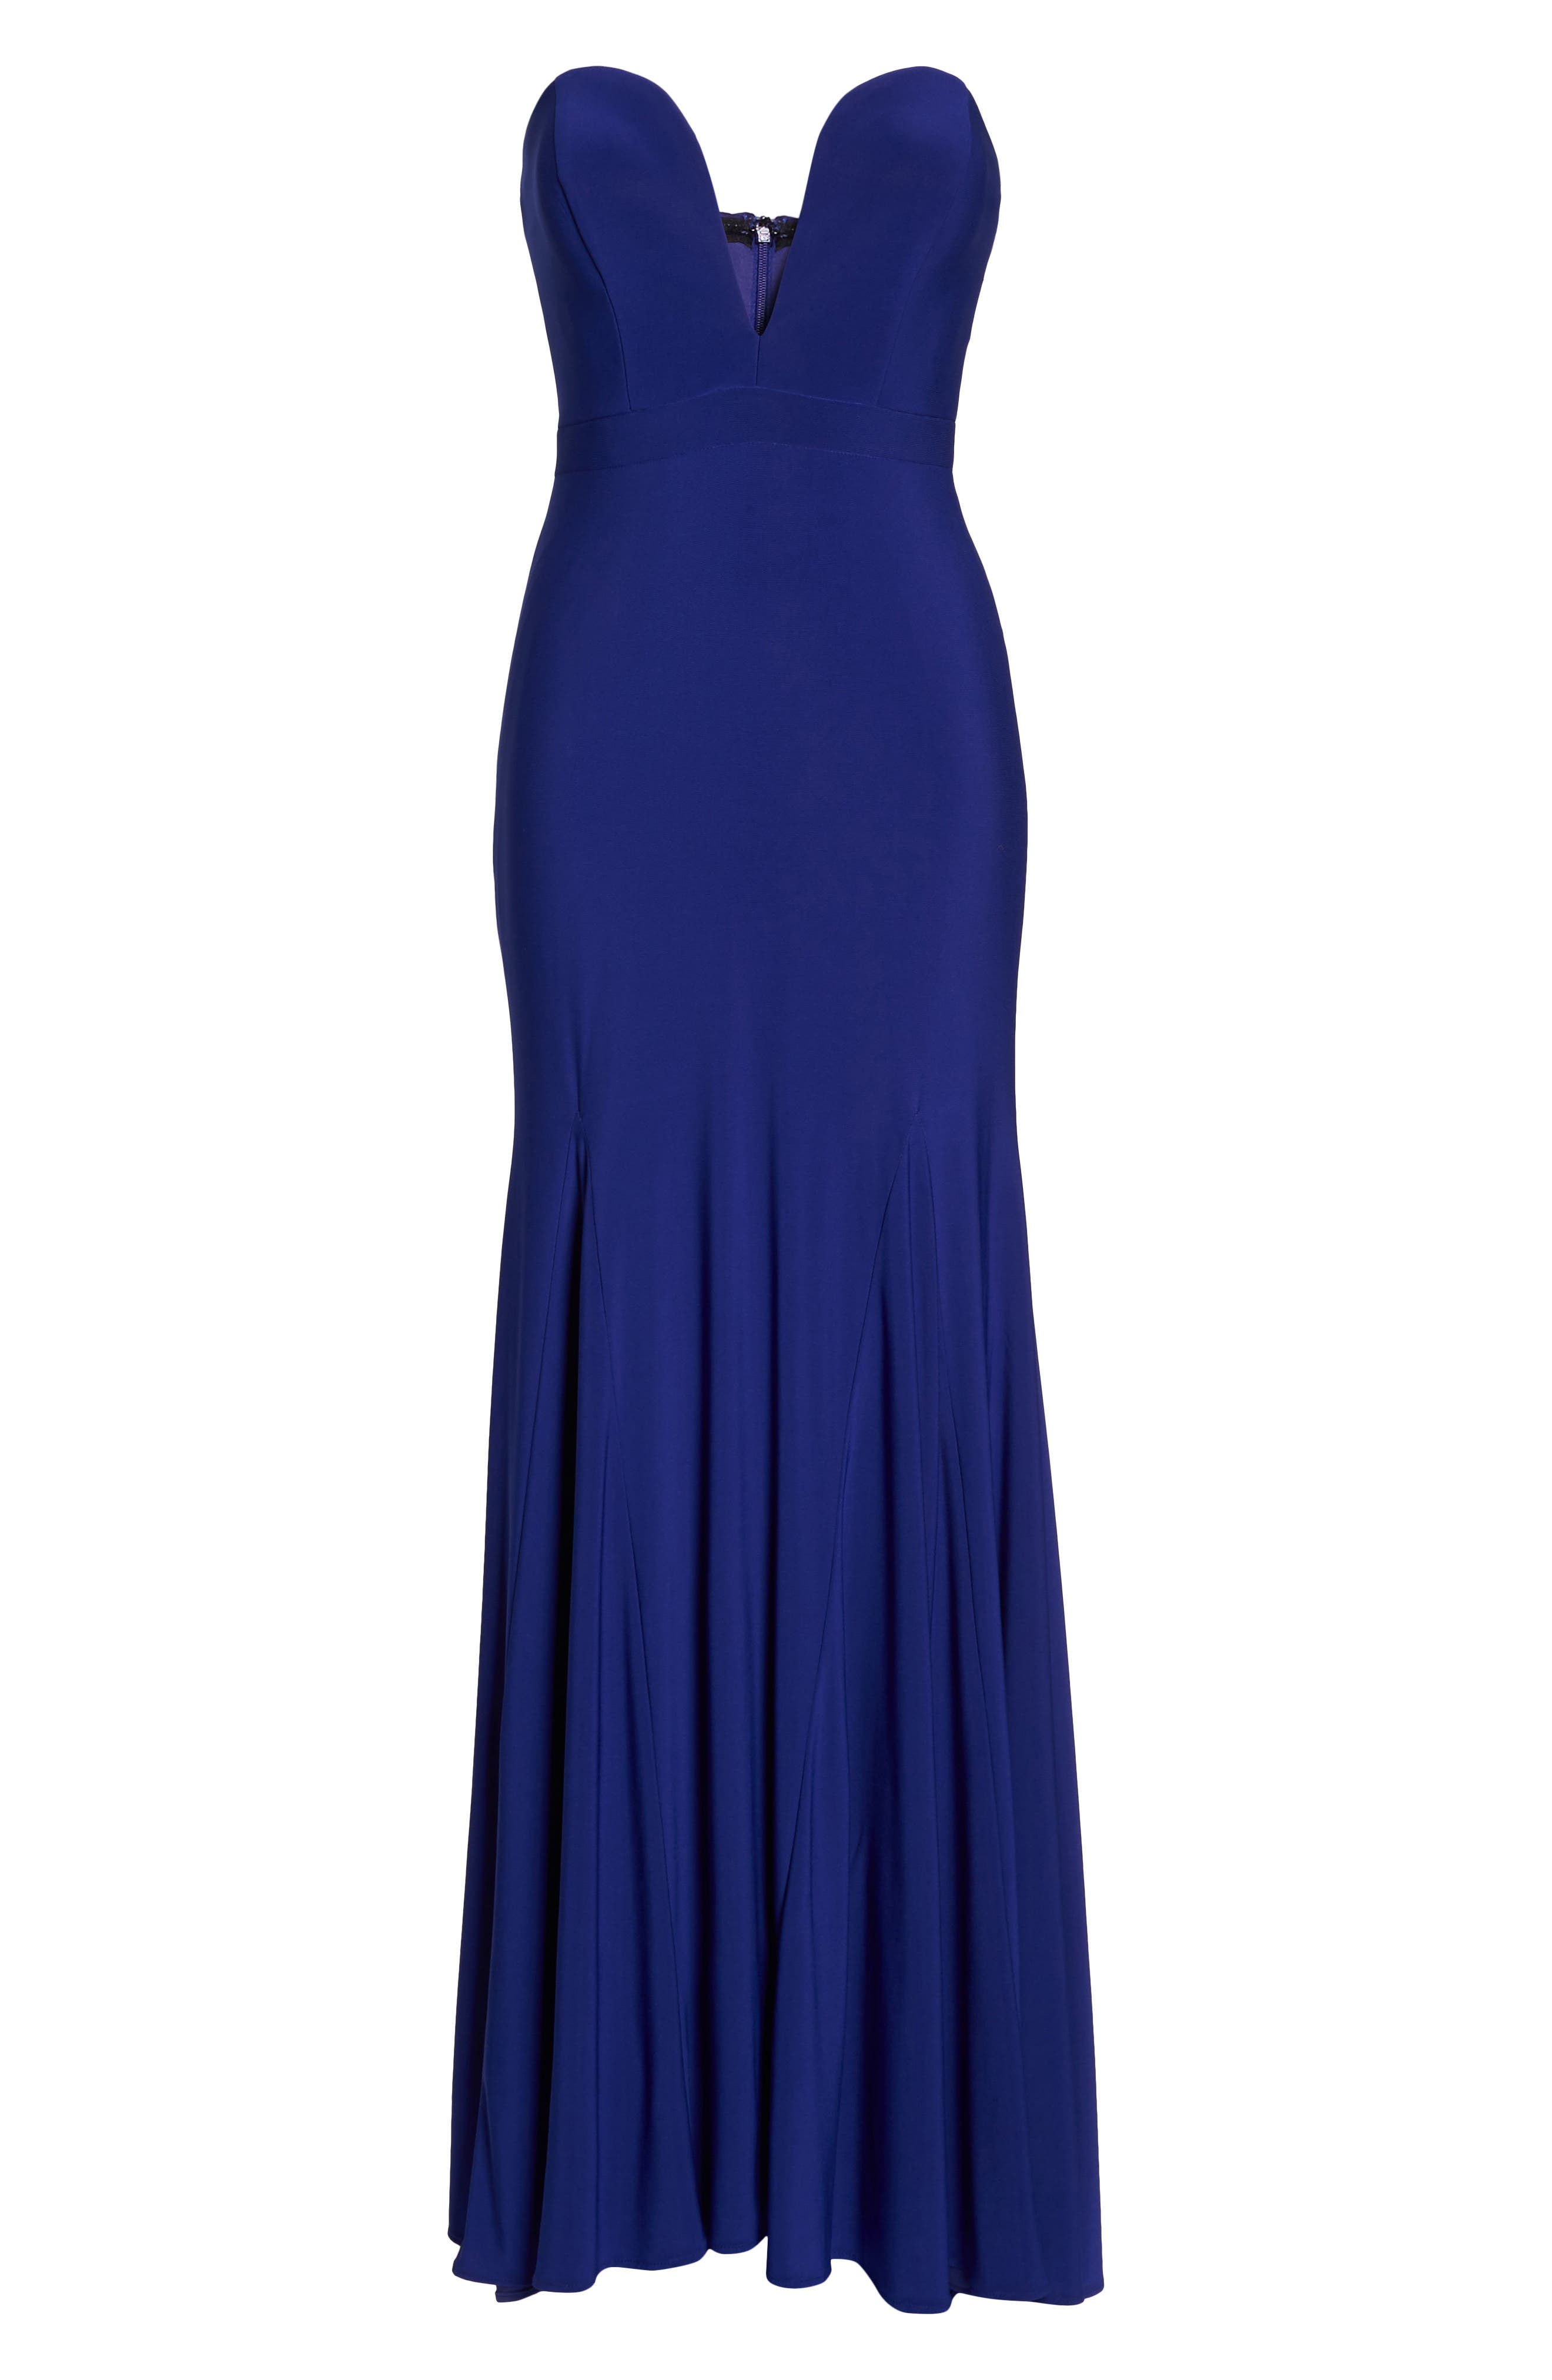 Bustier Strapless Gown,                             Alternate thumbnail 6, color,                             Electric Blue